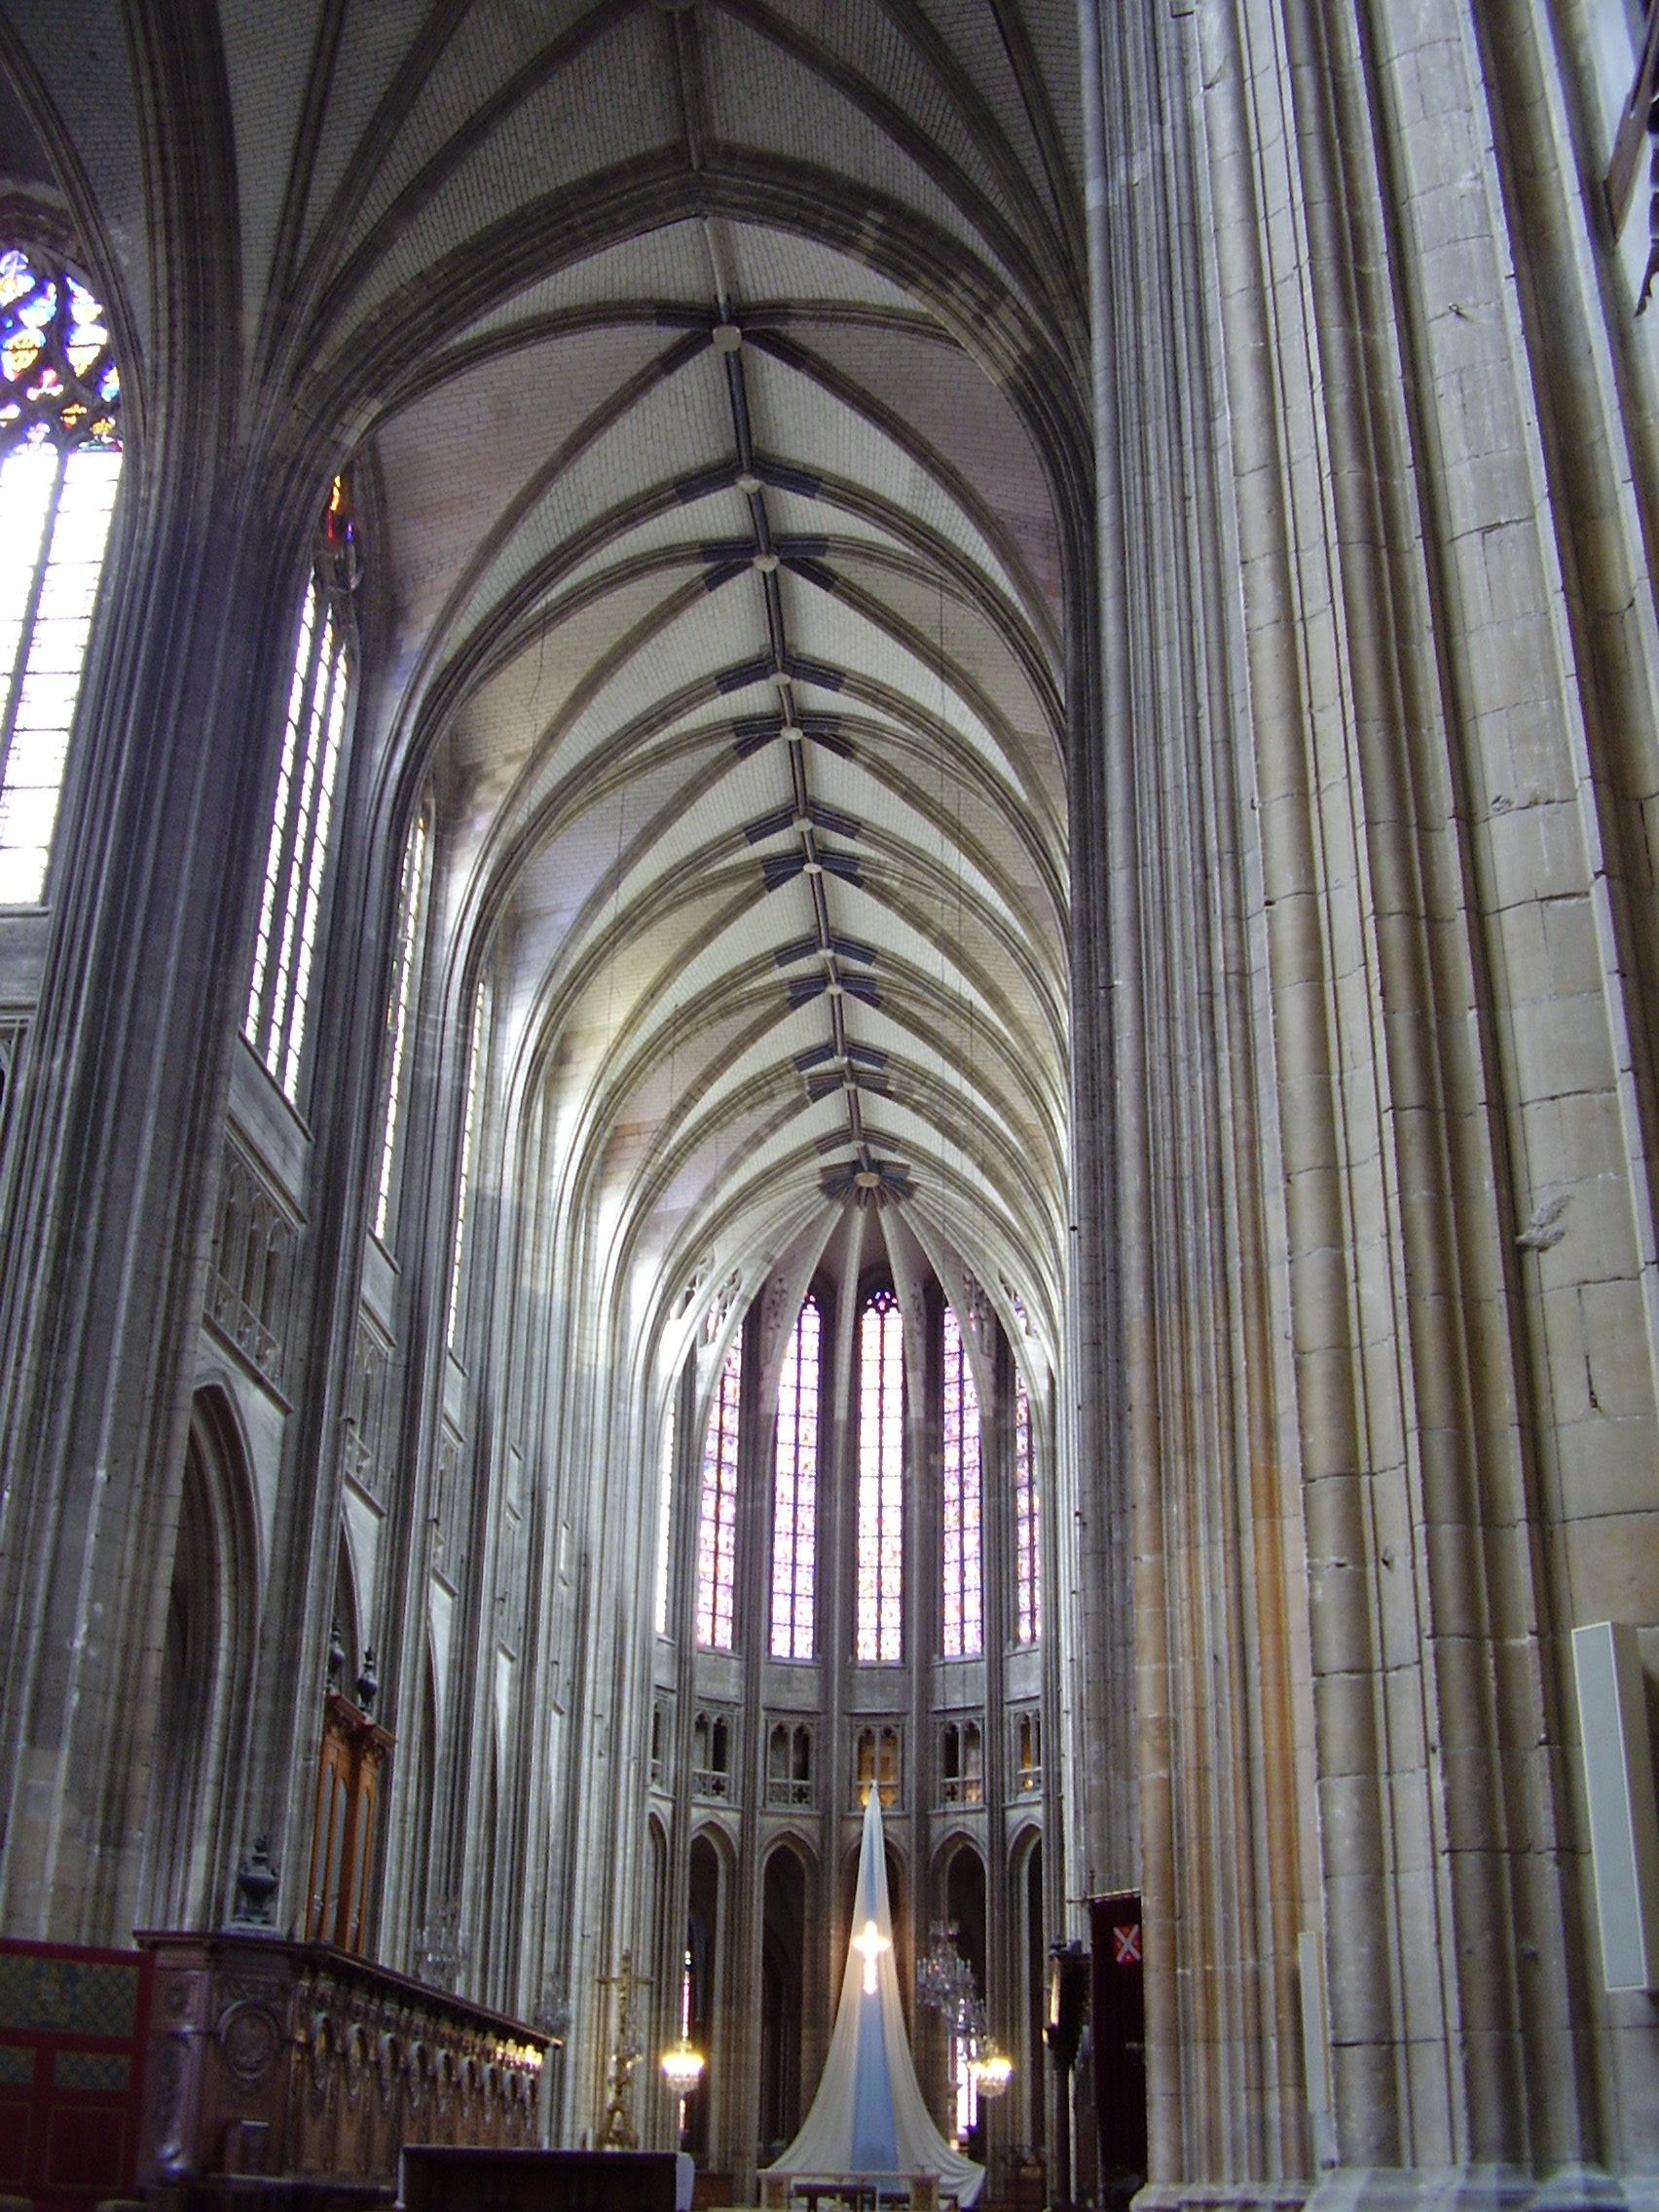 http://upload.wikimedia.org/wikipedia/commons/4/41/Cath%C3%A9drale_Sainte-Croix_d%27Orl%C3%A9ans_2008_PD_01.JPG